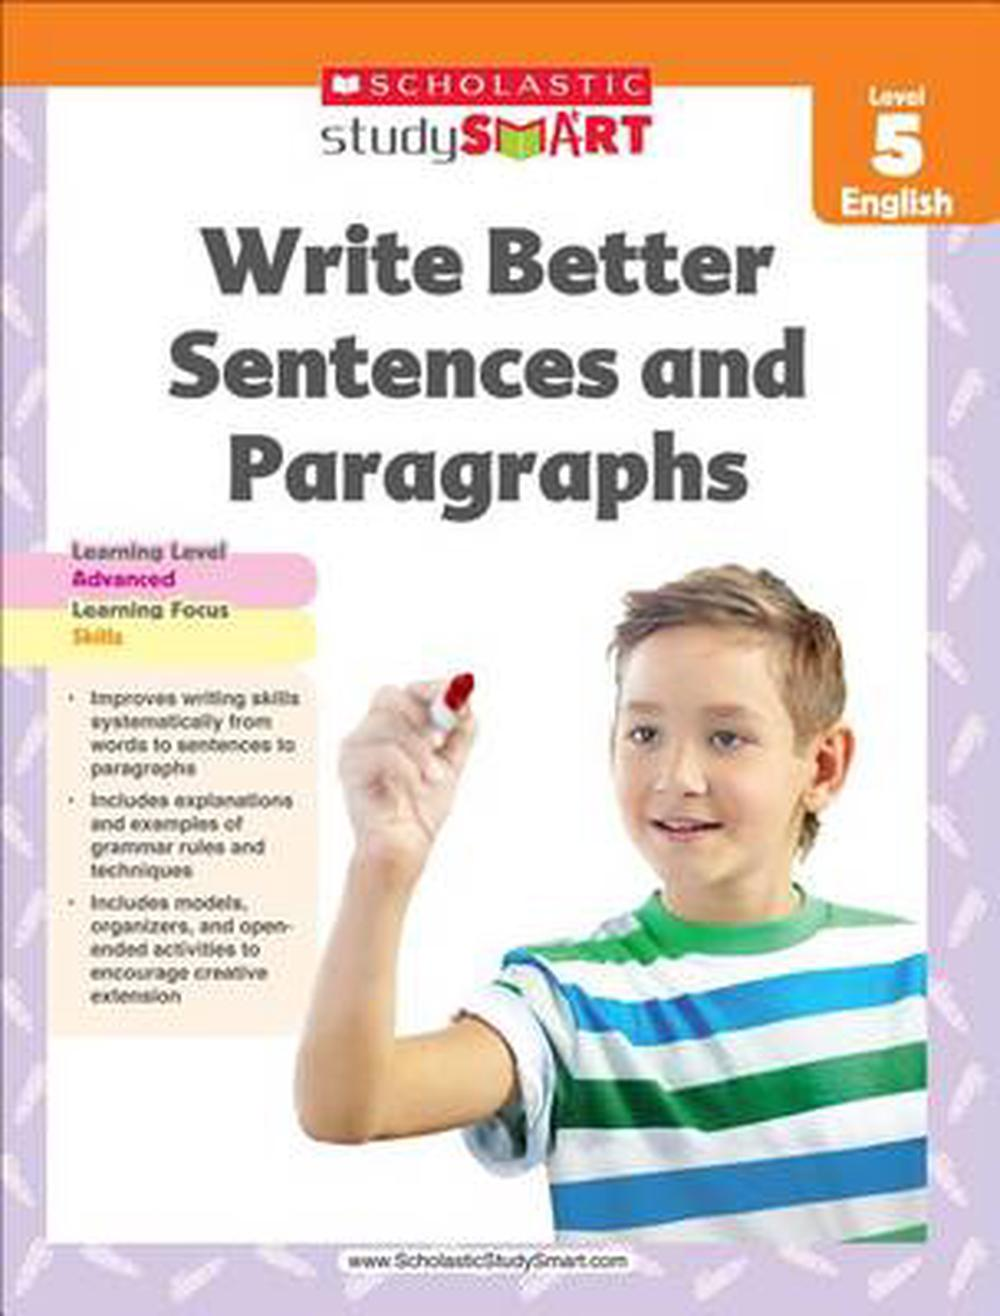 exploring writing sentences and paragraphs Read pdf exploring writing paragraphs and  exploring writing emphasizes personalized learning search for sentence in a paragraph  c1731006c4 free download game nokia 6300instmank nts gat book free download pdf va - nostalgia italiana 20 top twenty hits 1960-1969 10cd.